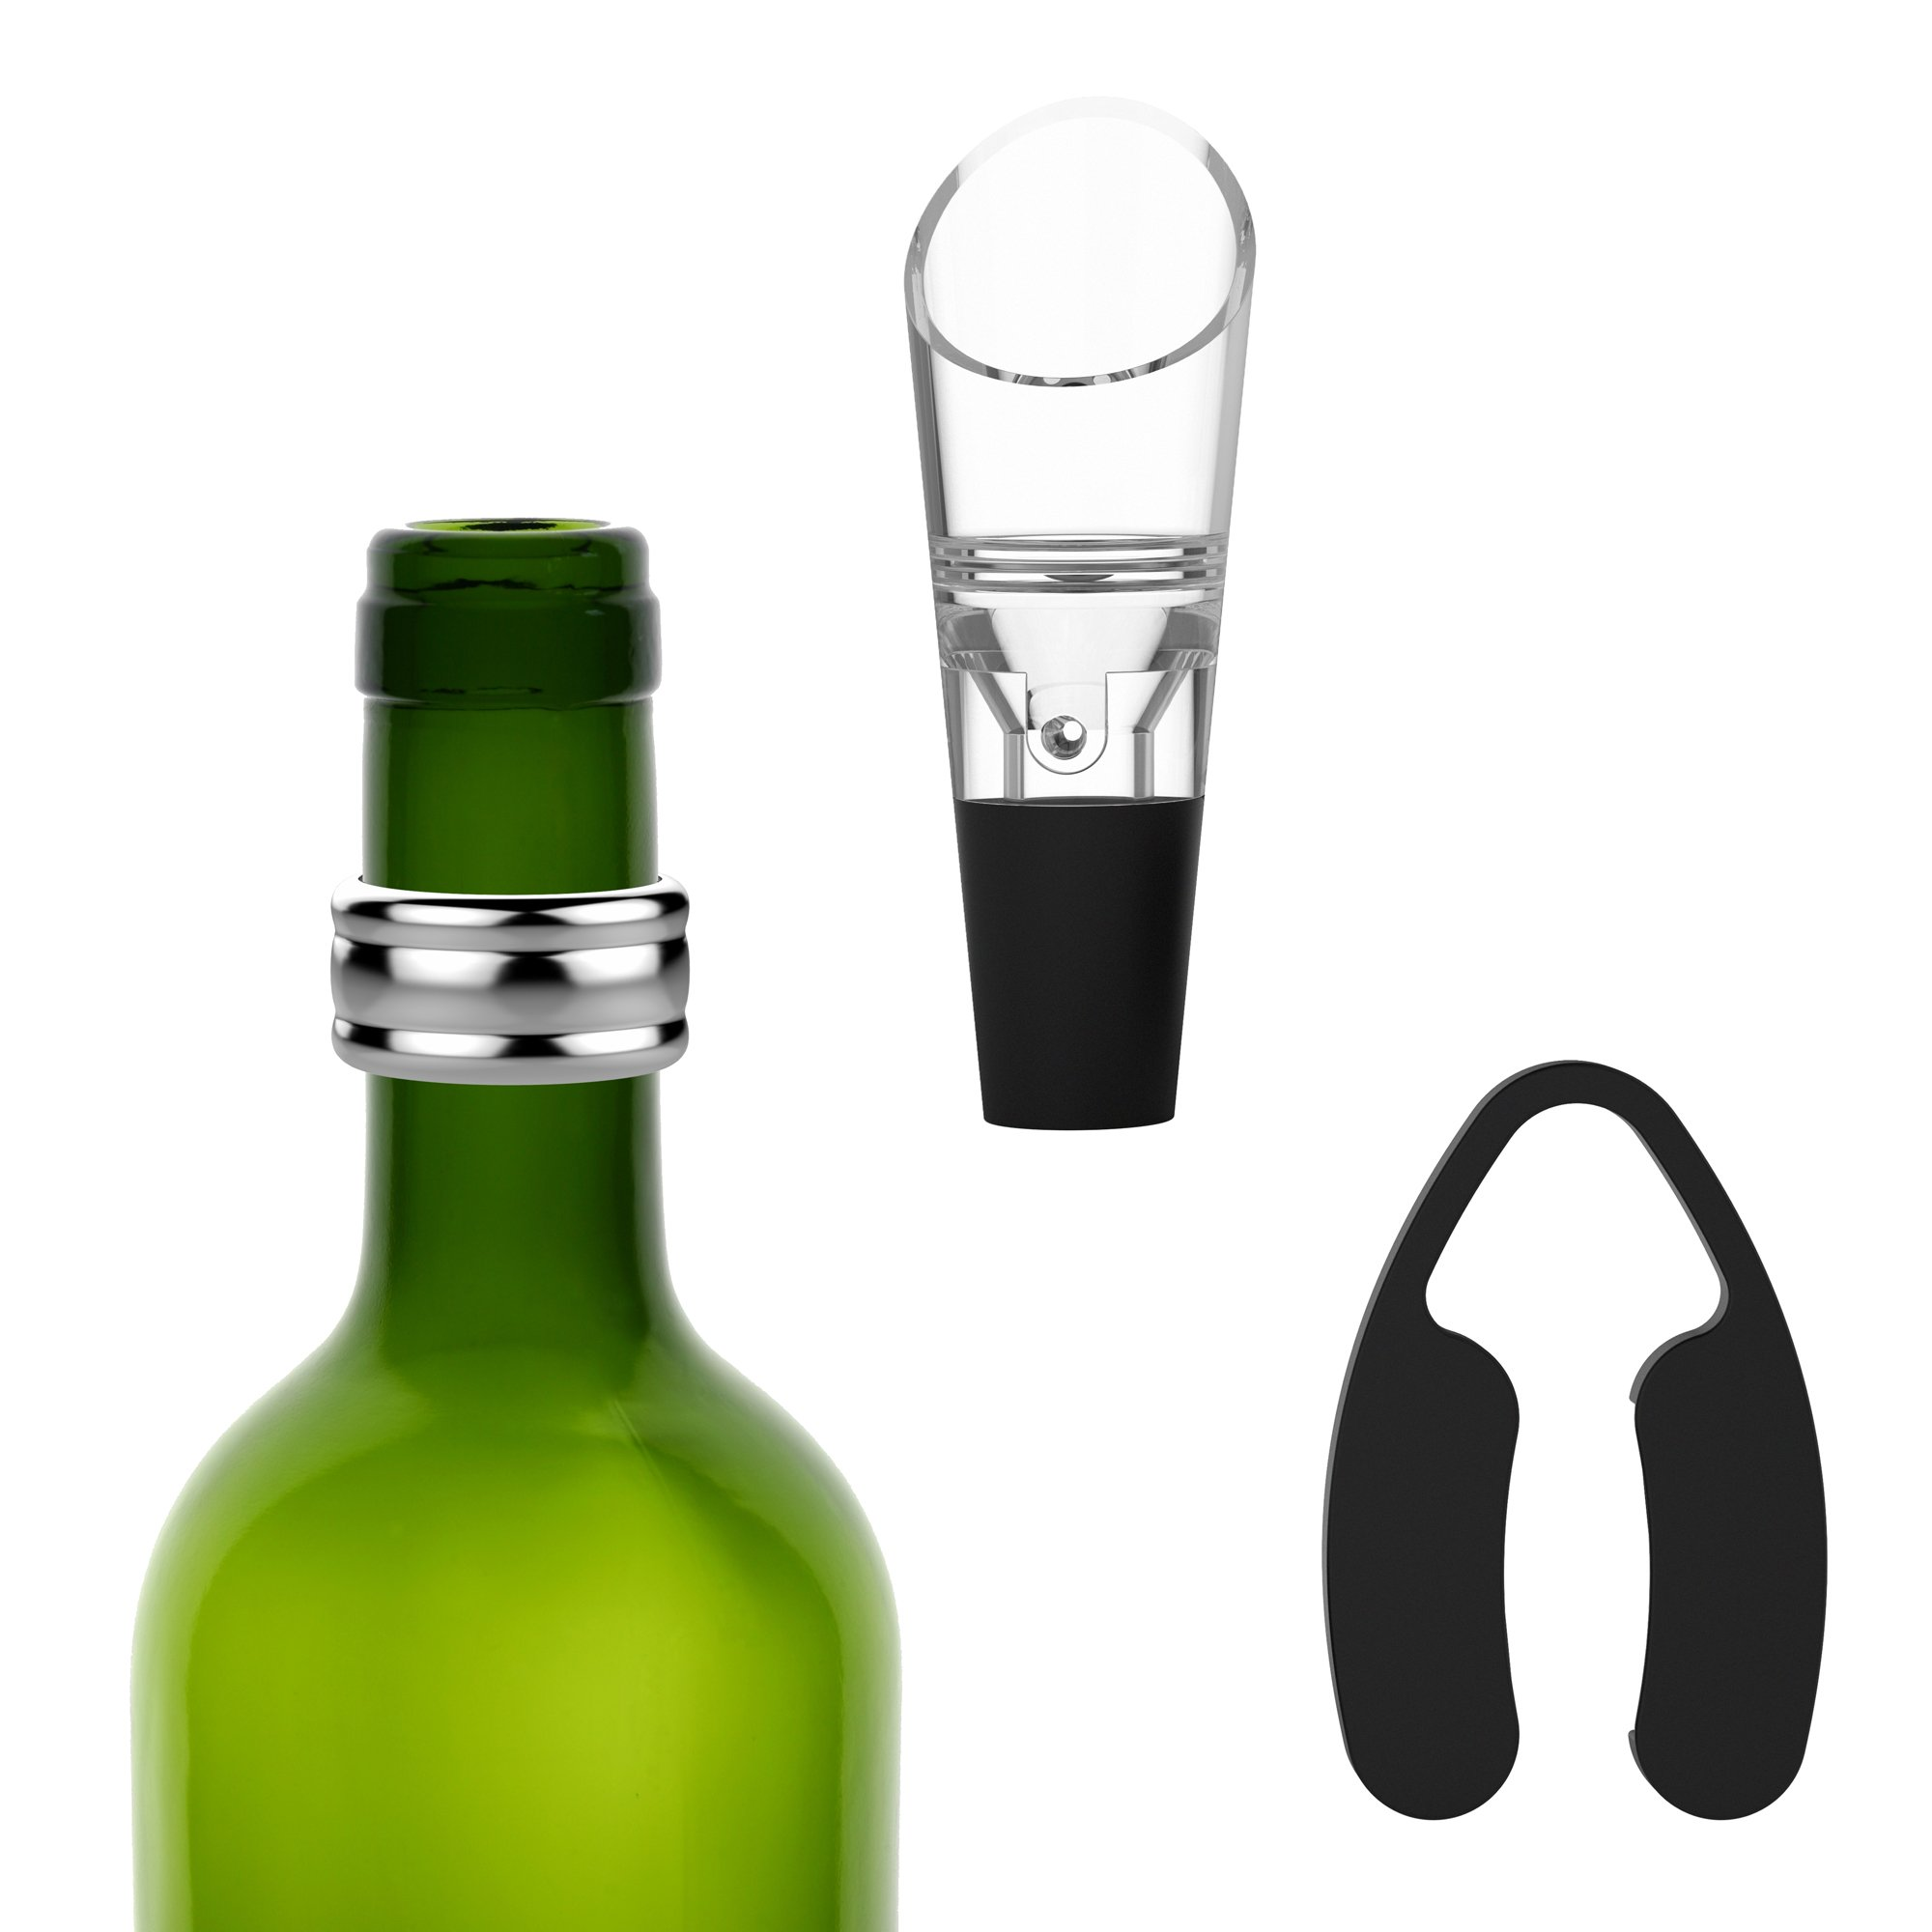 Vremi 9 Piece Wine Gift Set - Wine Gifts and Accessories with Electric Wine Opener and Wine Saver Preserver with 4 Wine Bottle Stoppers - Fun Cool Wine Gifts for Women or Men - Unique Wine Gift Box by Vremi (Image #4)